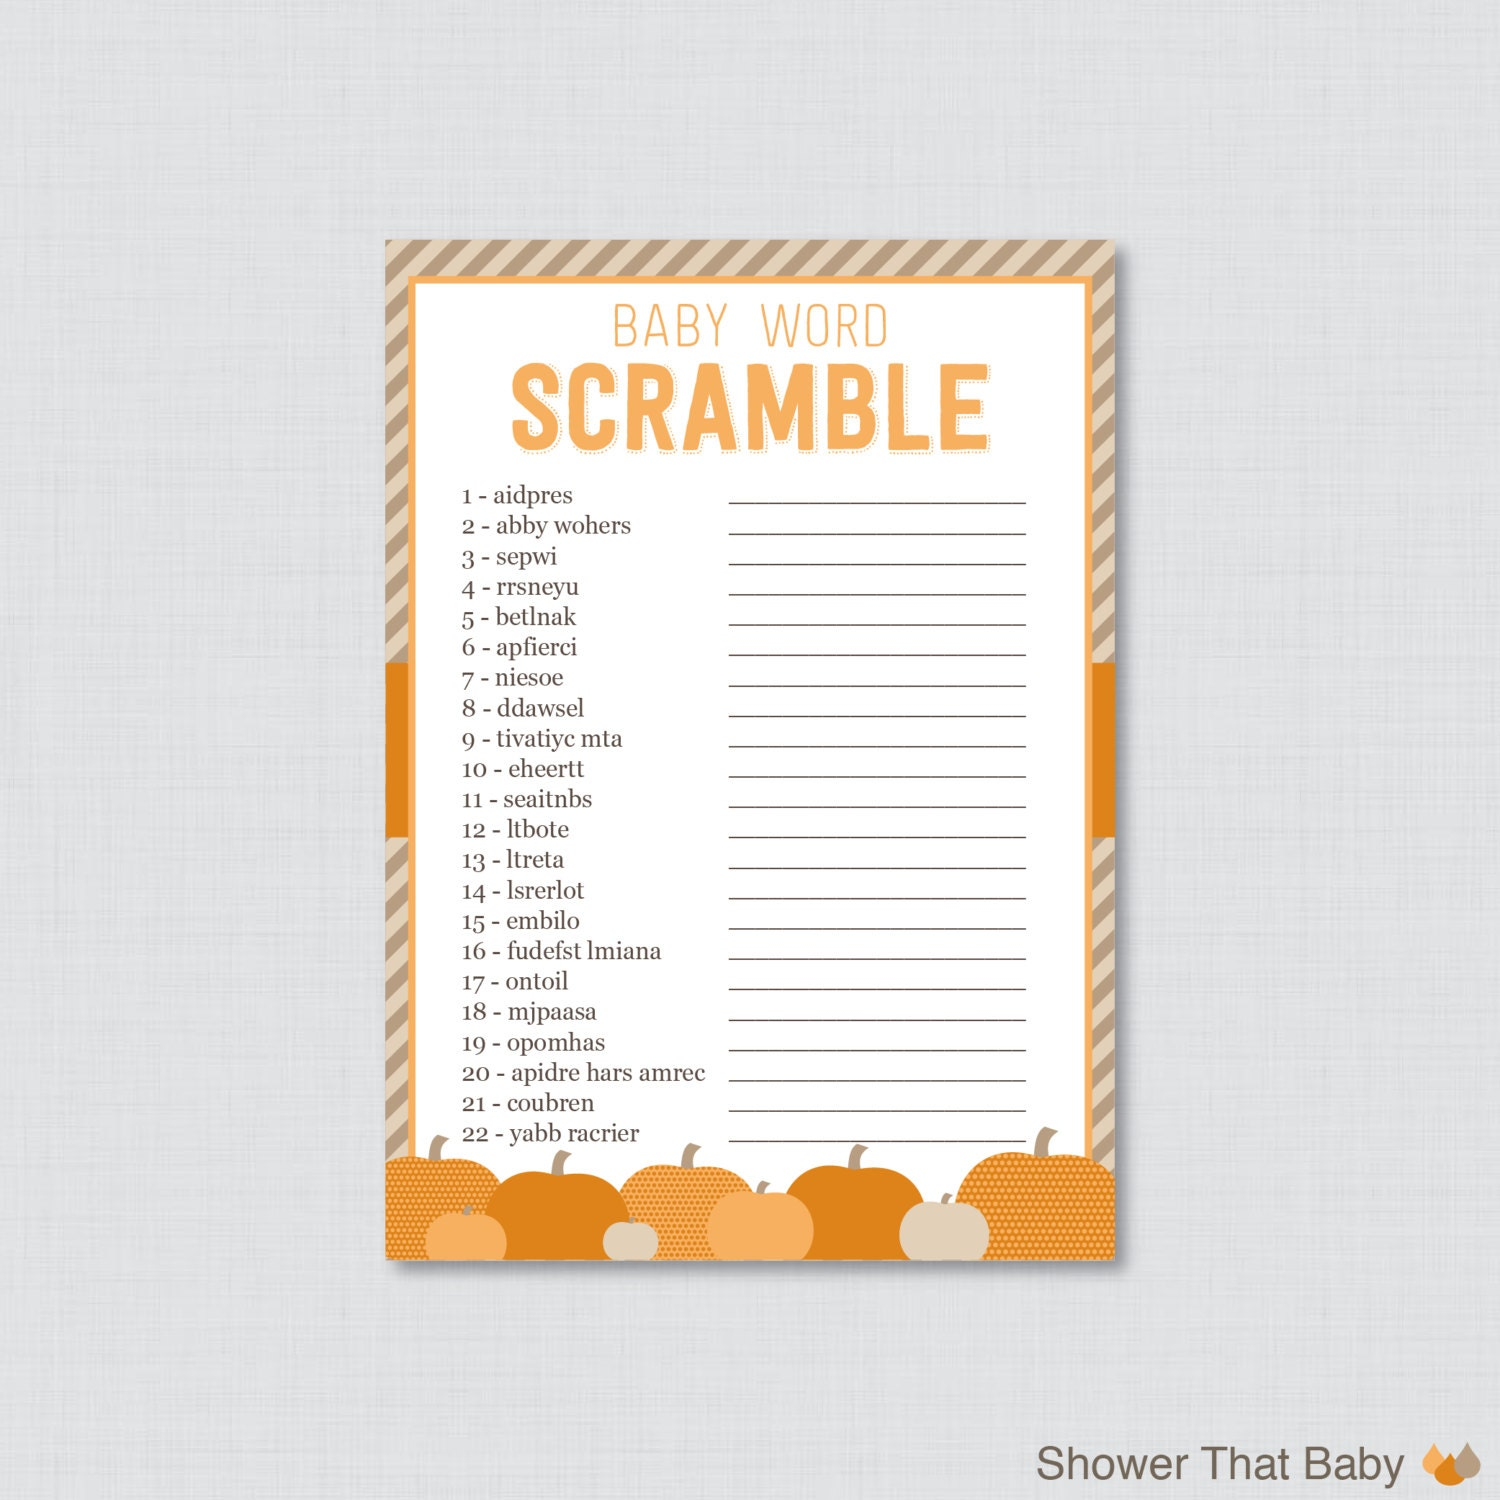 Little pumpkin baby shower word scramble game printable for Housewarming shower ideas